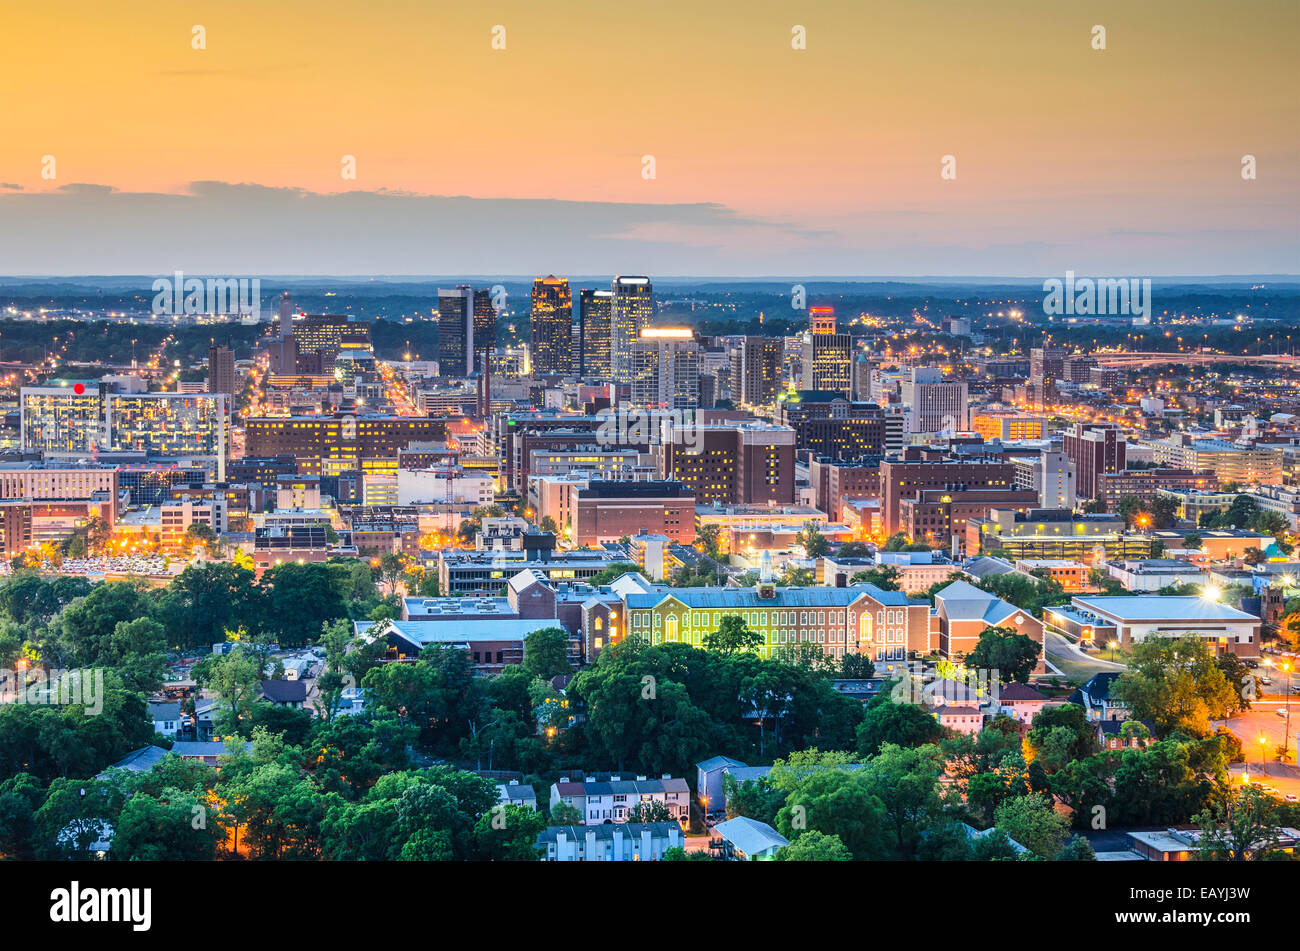 Birmingham, Alabama, USA downtown skyline. - Stock Image